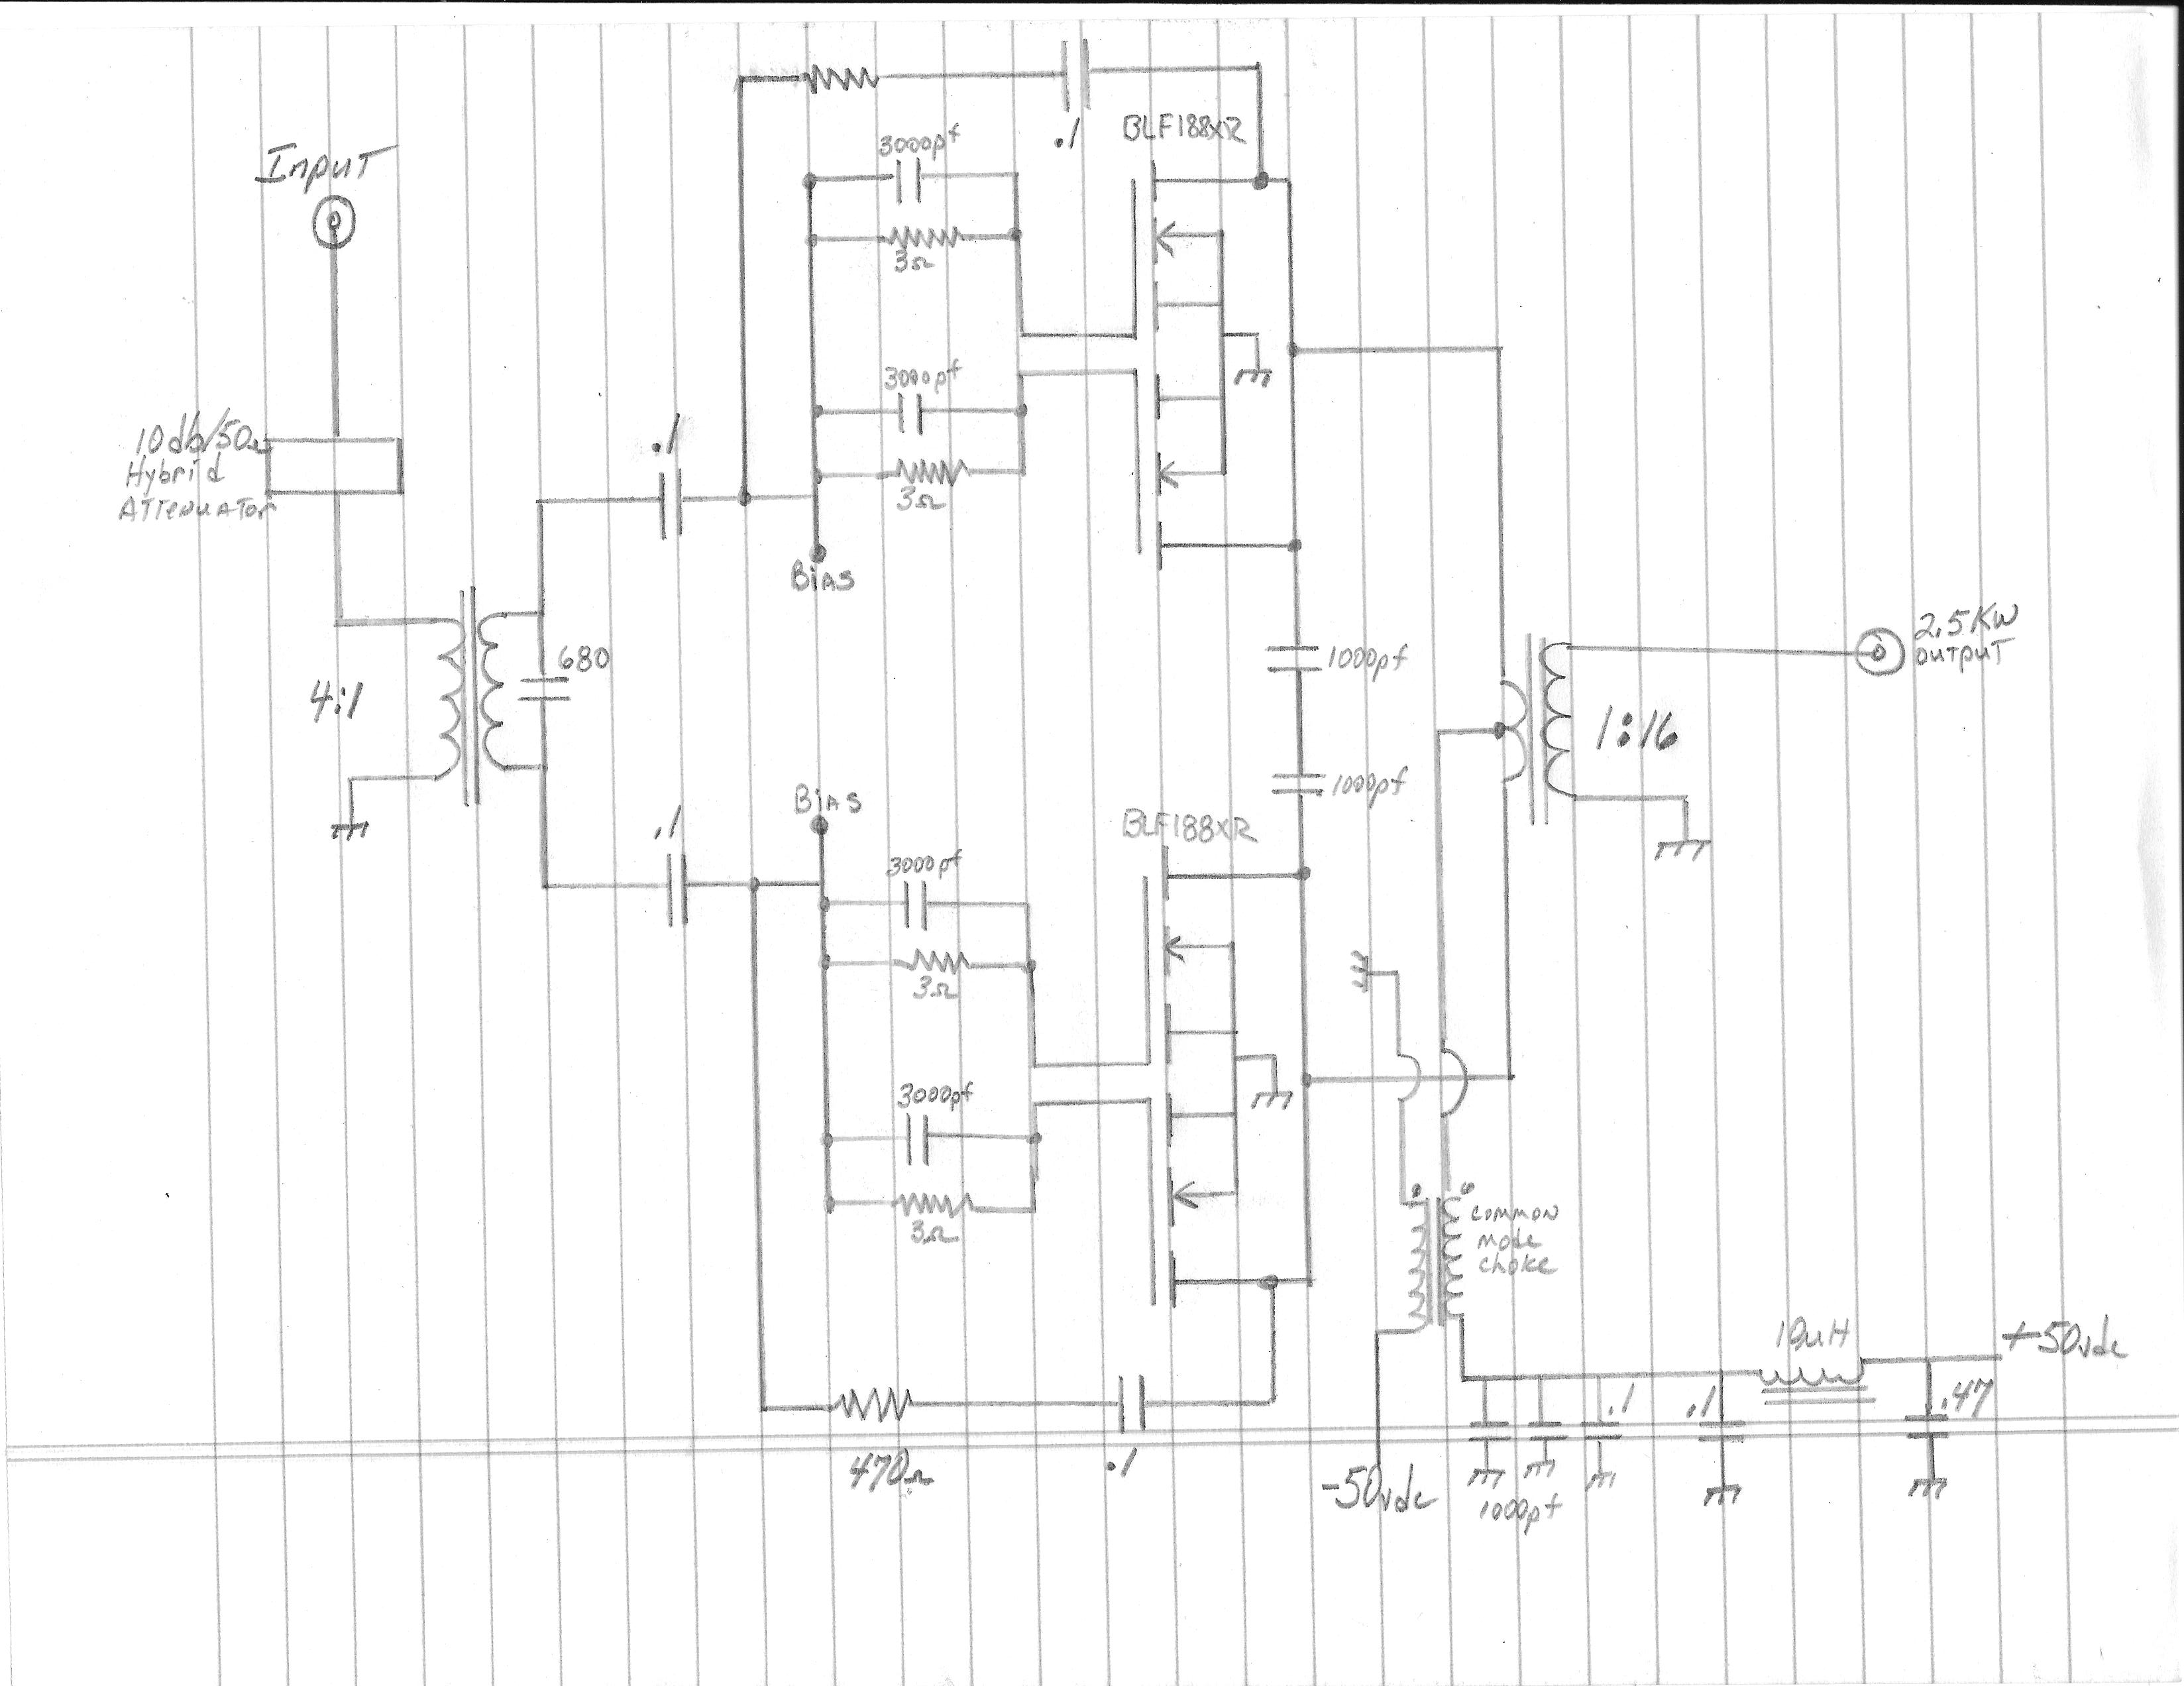 2 X Blf188xr Amplifier 18 54mhz Amp Meter Circuit Connect The 50vdc Supply With An In Set Bias Pots For 40 Ohms Turn On